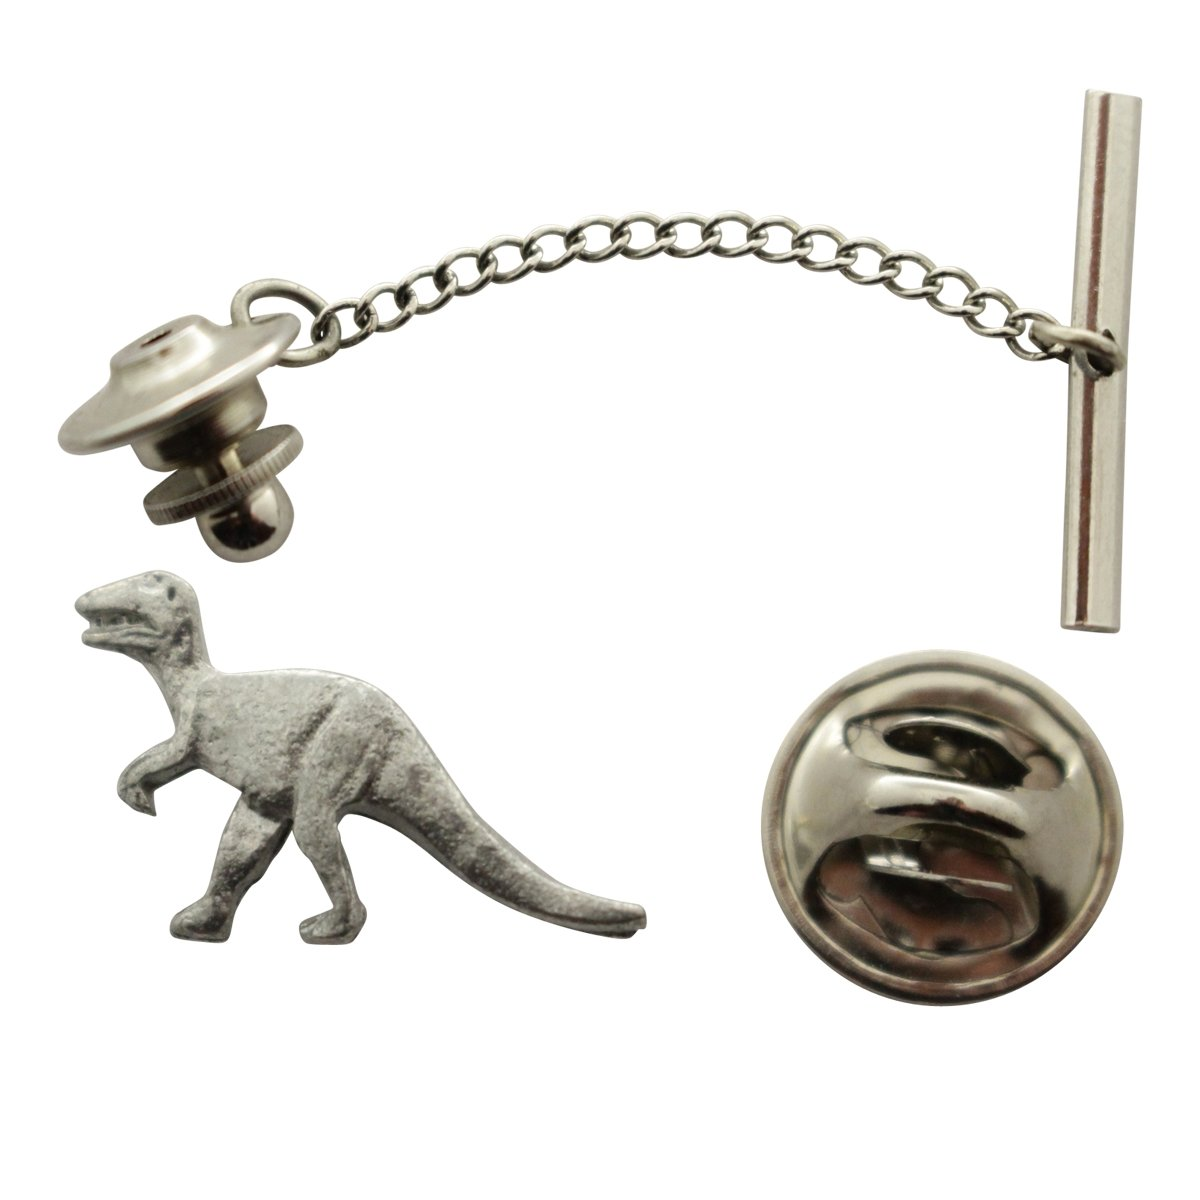 T Rex or Tyrannosaurus Tie Tack ~ Antiqued Pewter ~ Tie Tack or Pin ~ Sarah's Treats & Treasures